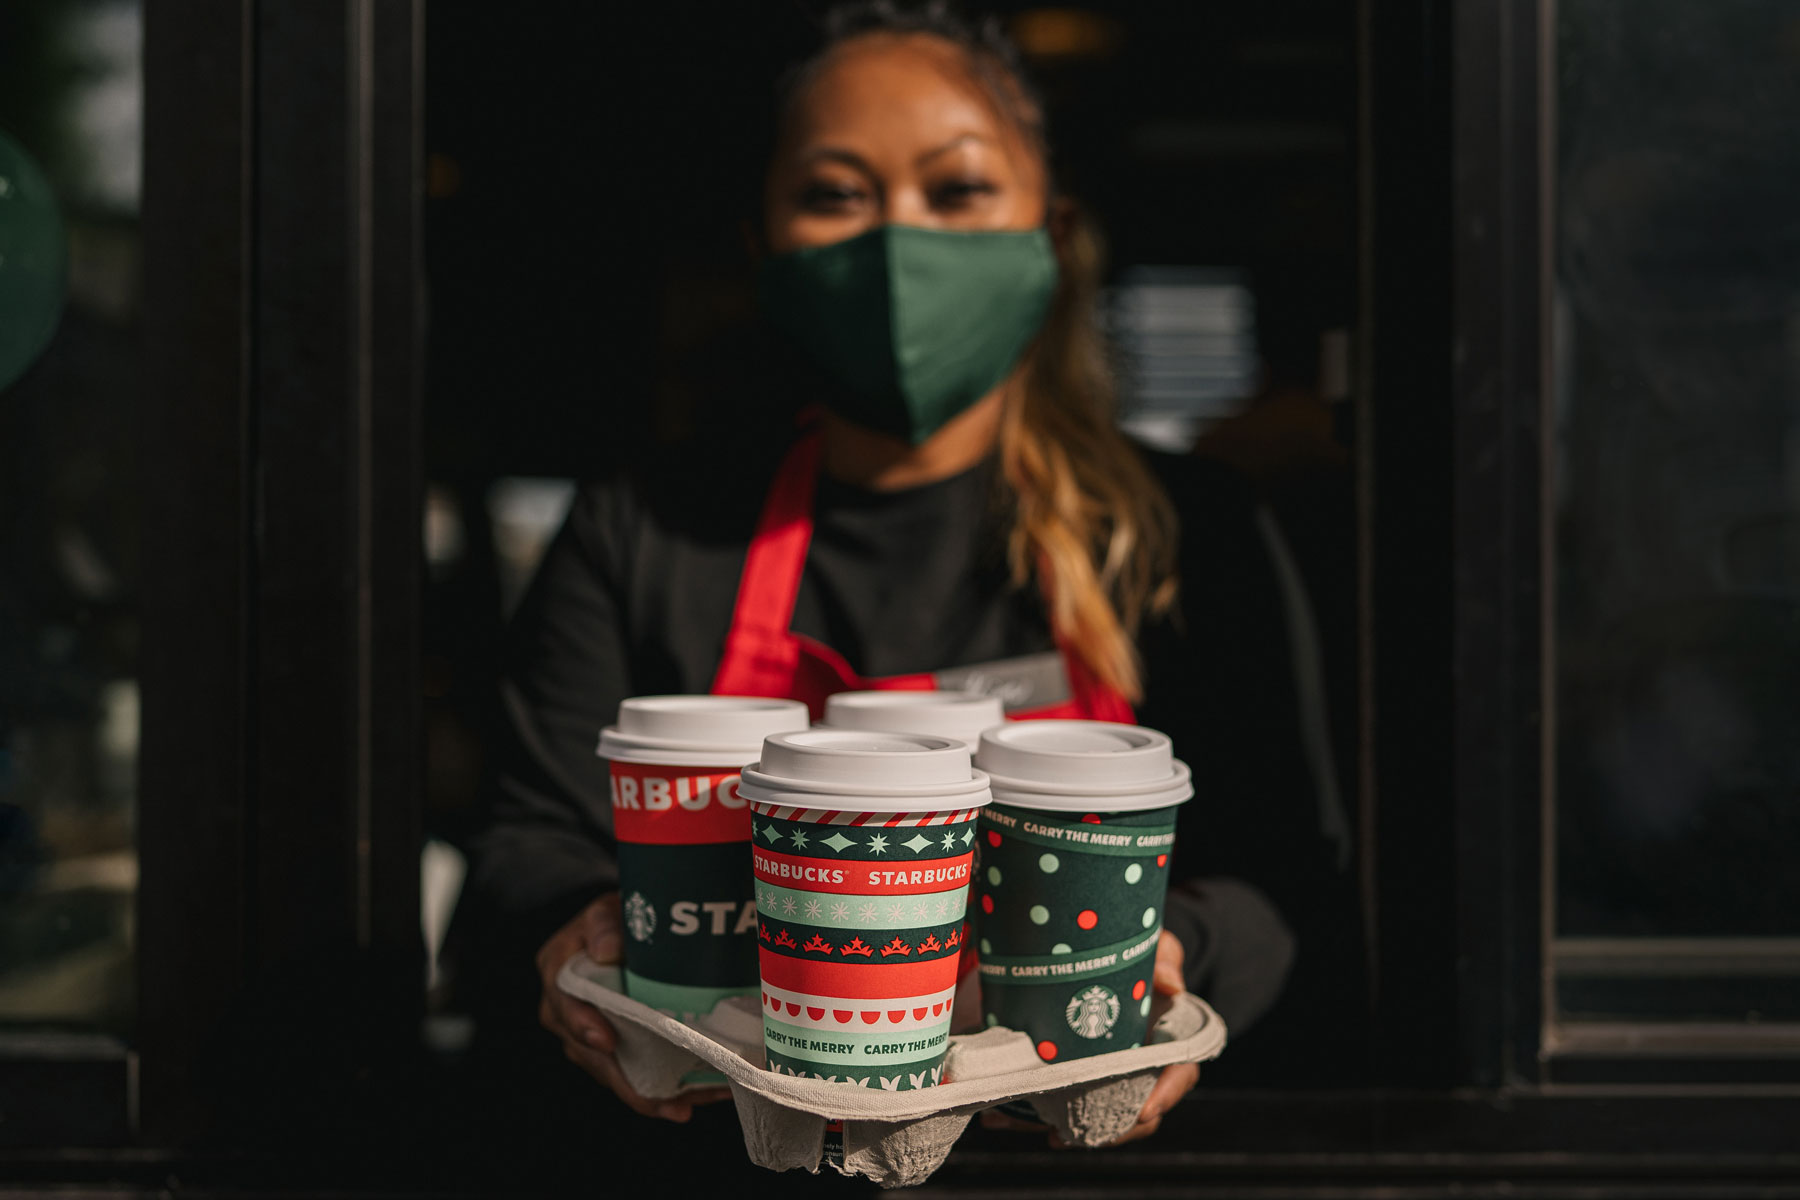 Starbucks employee holding holiday cups